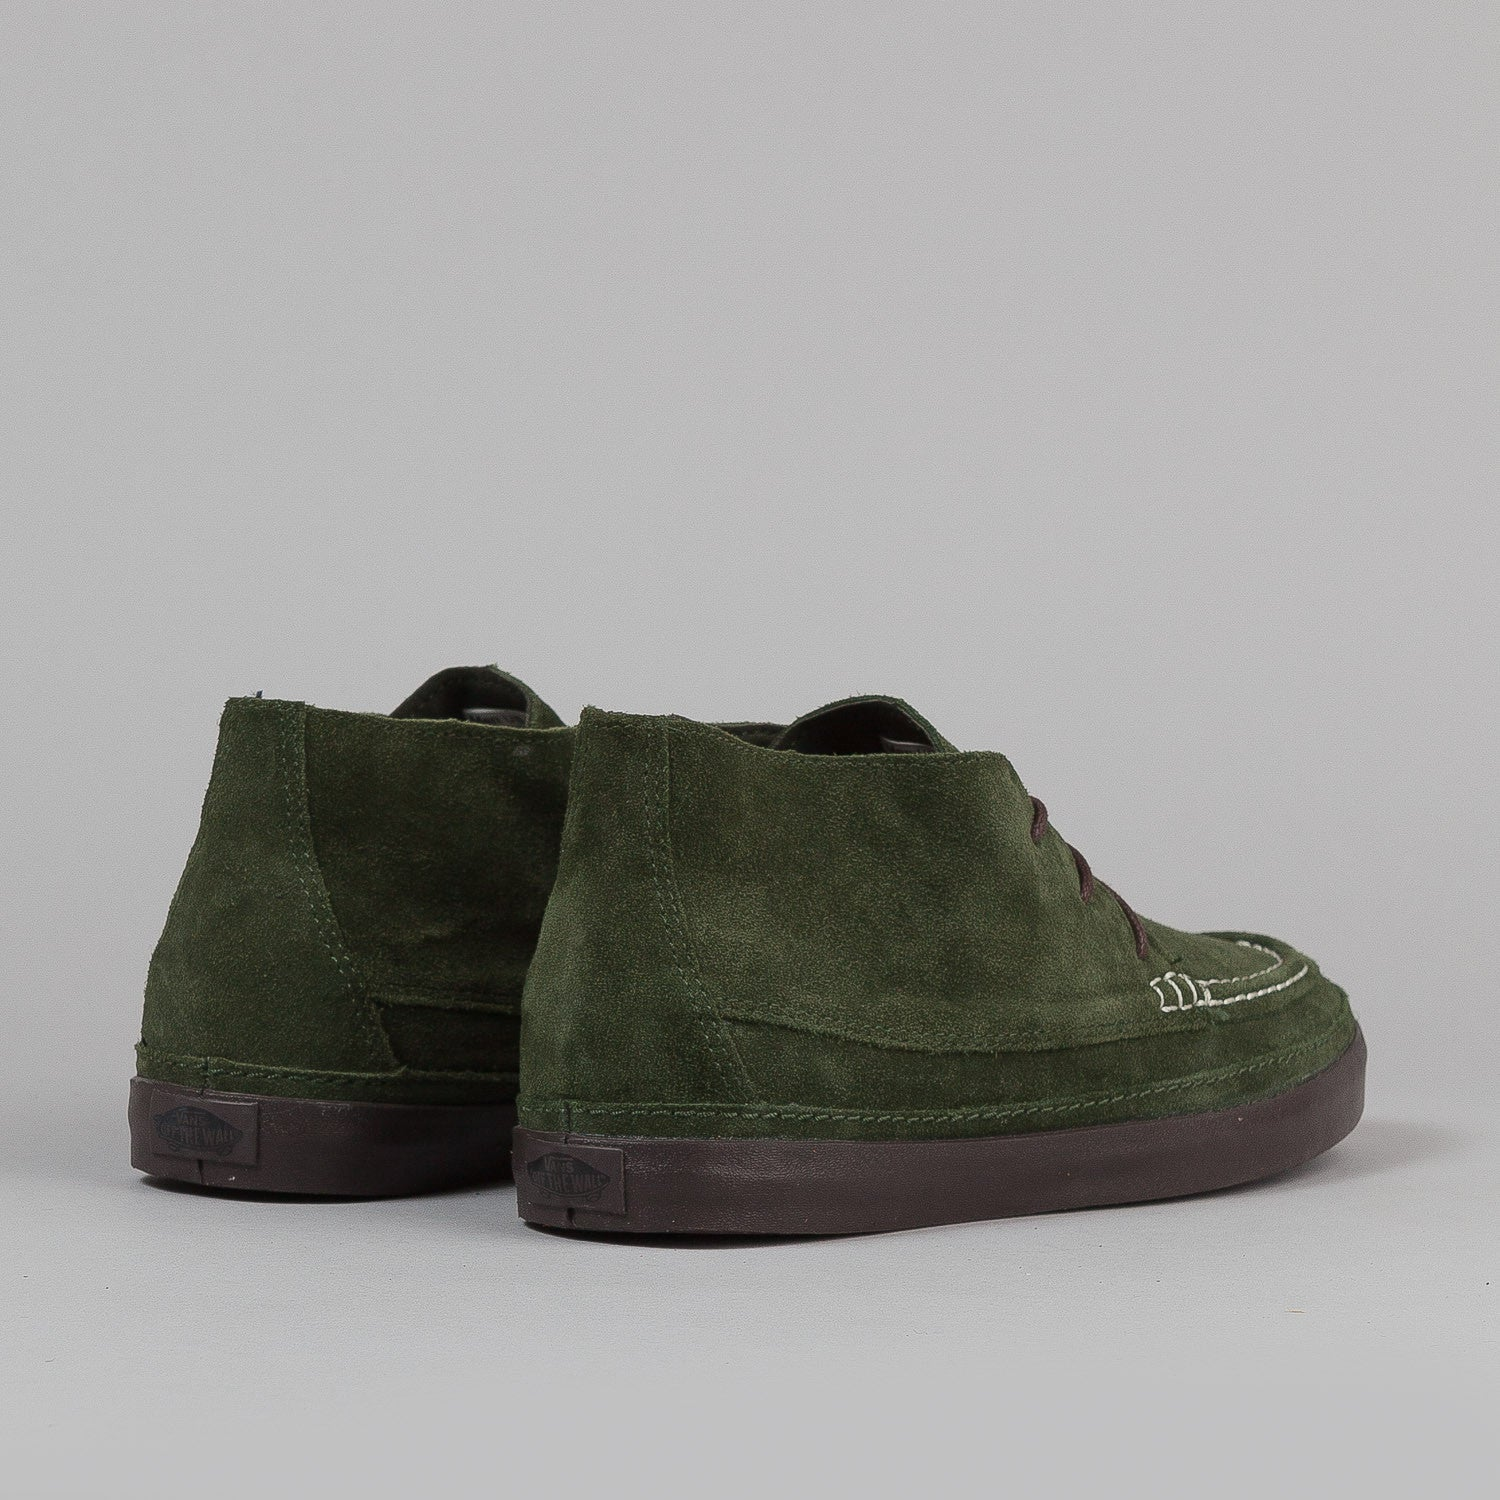 Vans Mesa Moc CA Shoes - Rosin / Black Coffee